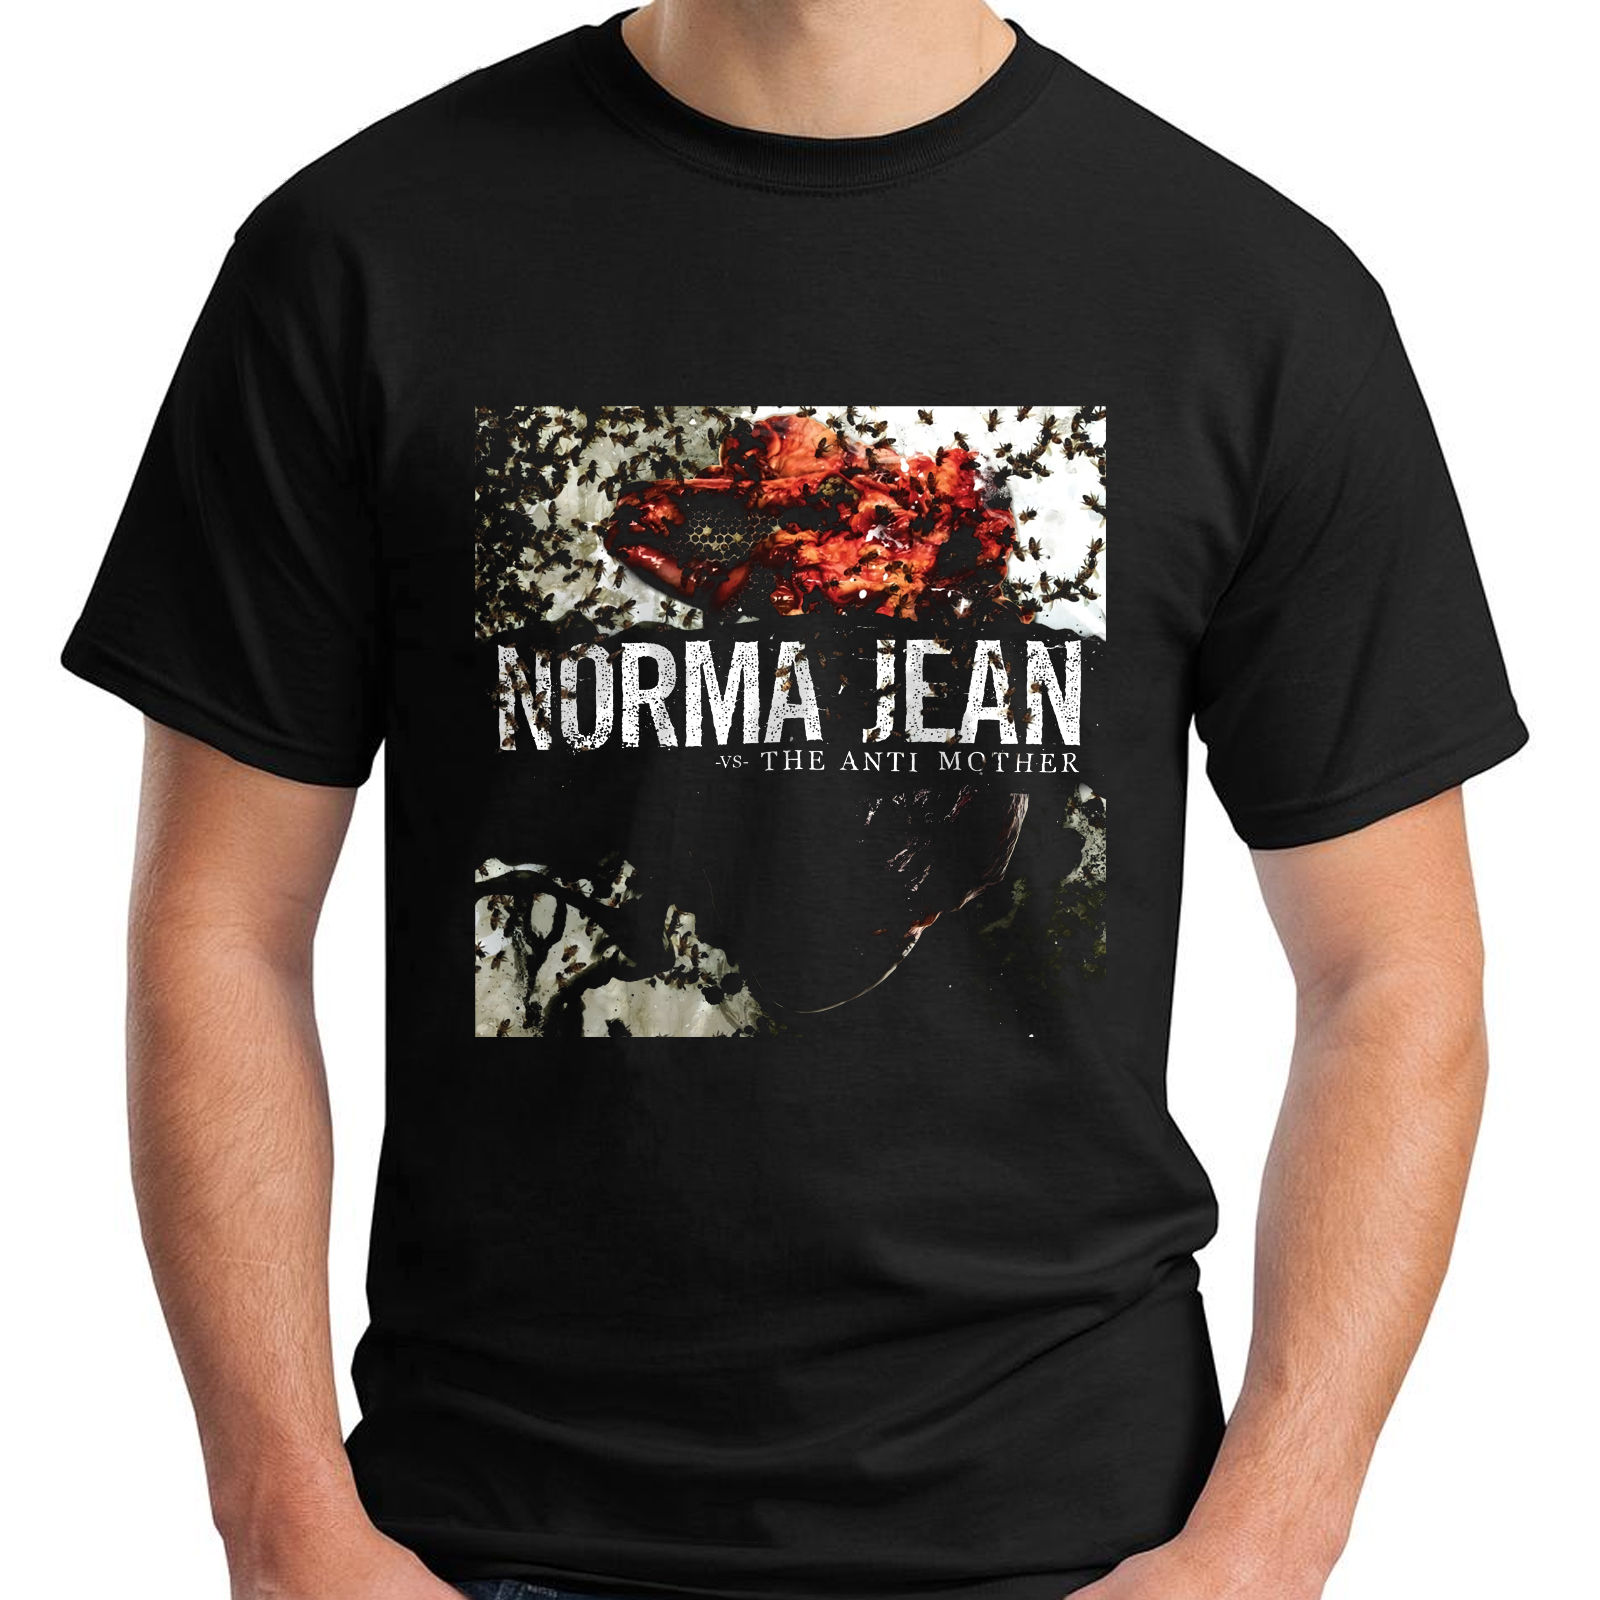 NORMA JEAN The Anti Mother Metalcore Band Sleeve Black Men's T-Shirt Size S-3XL 100% Cotton Short Sleeve Tops Tee T Shirts image